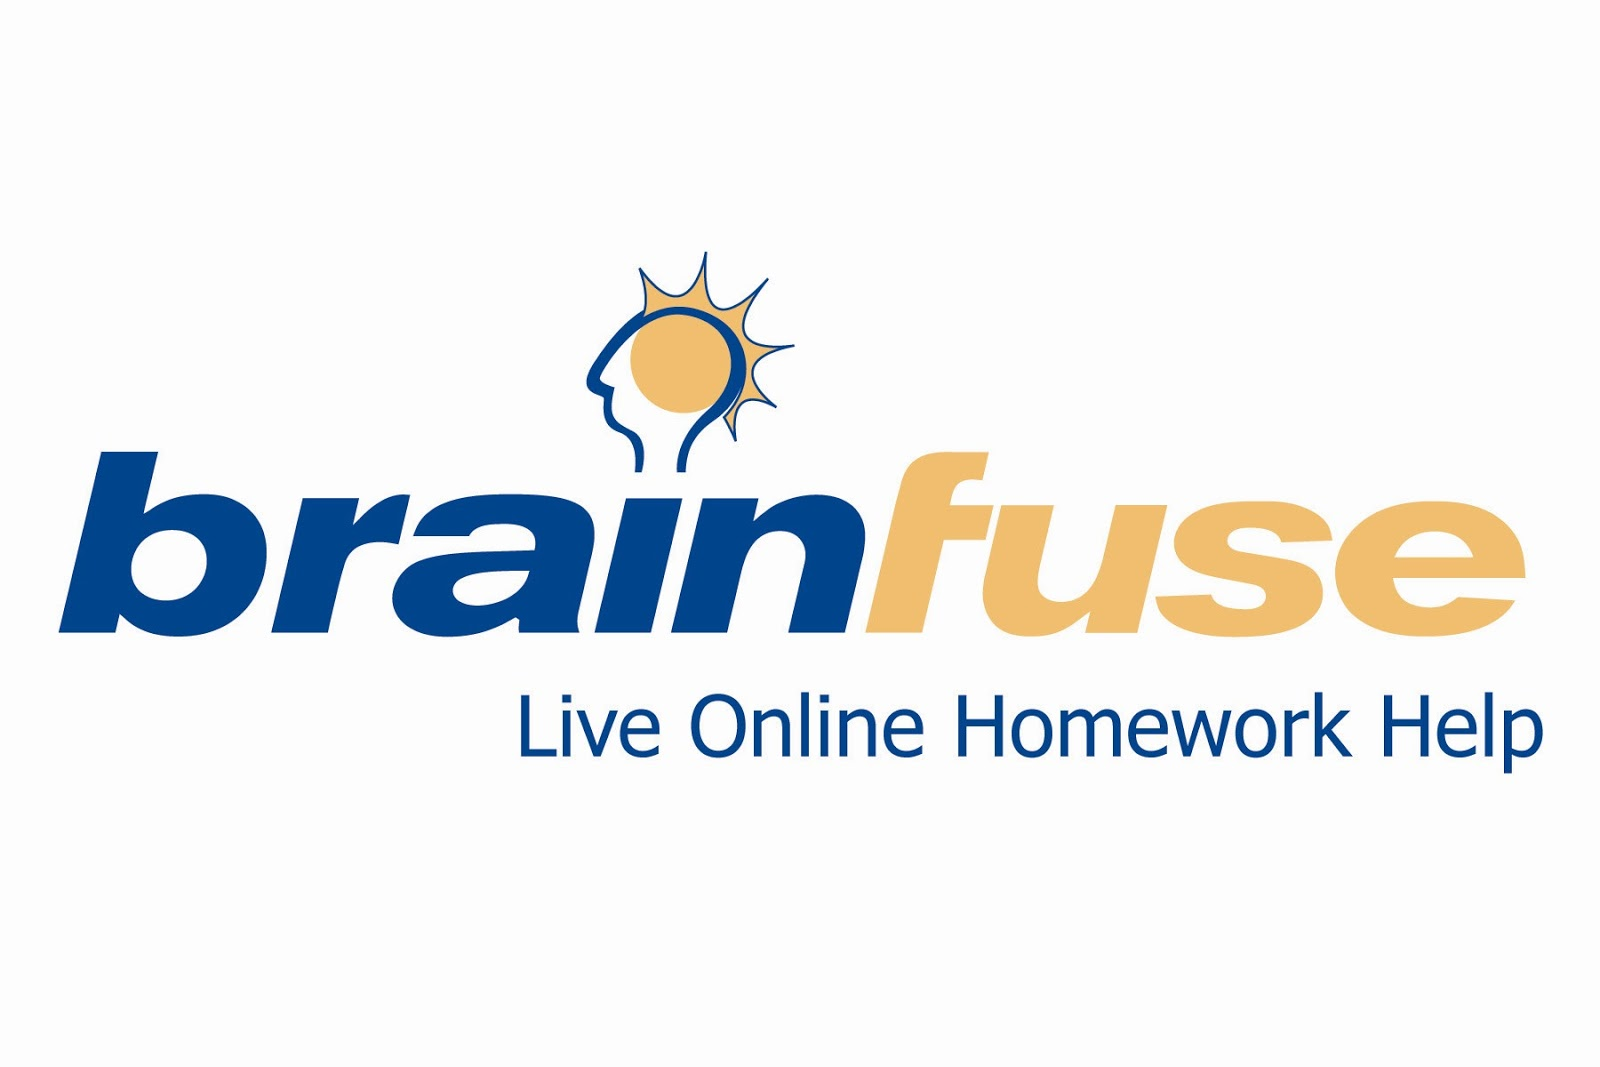 homework help for free online